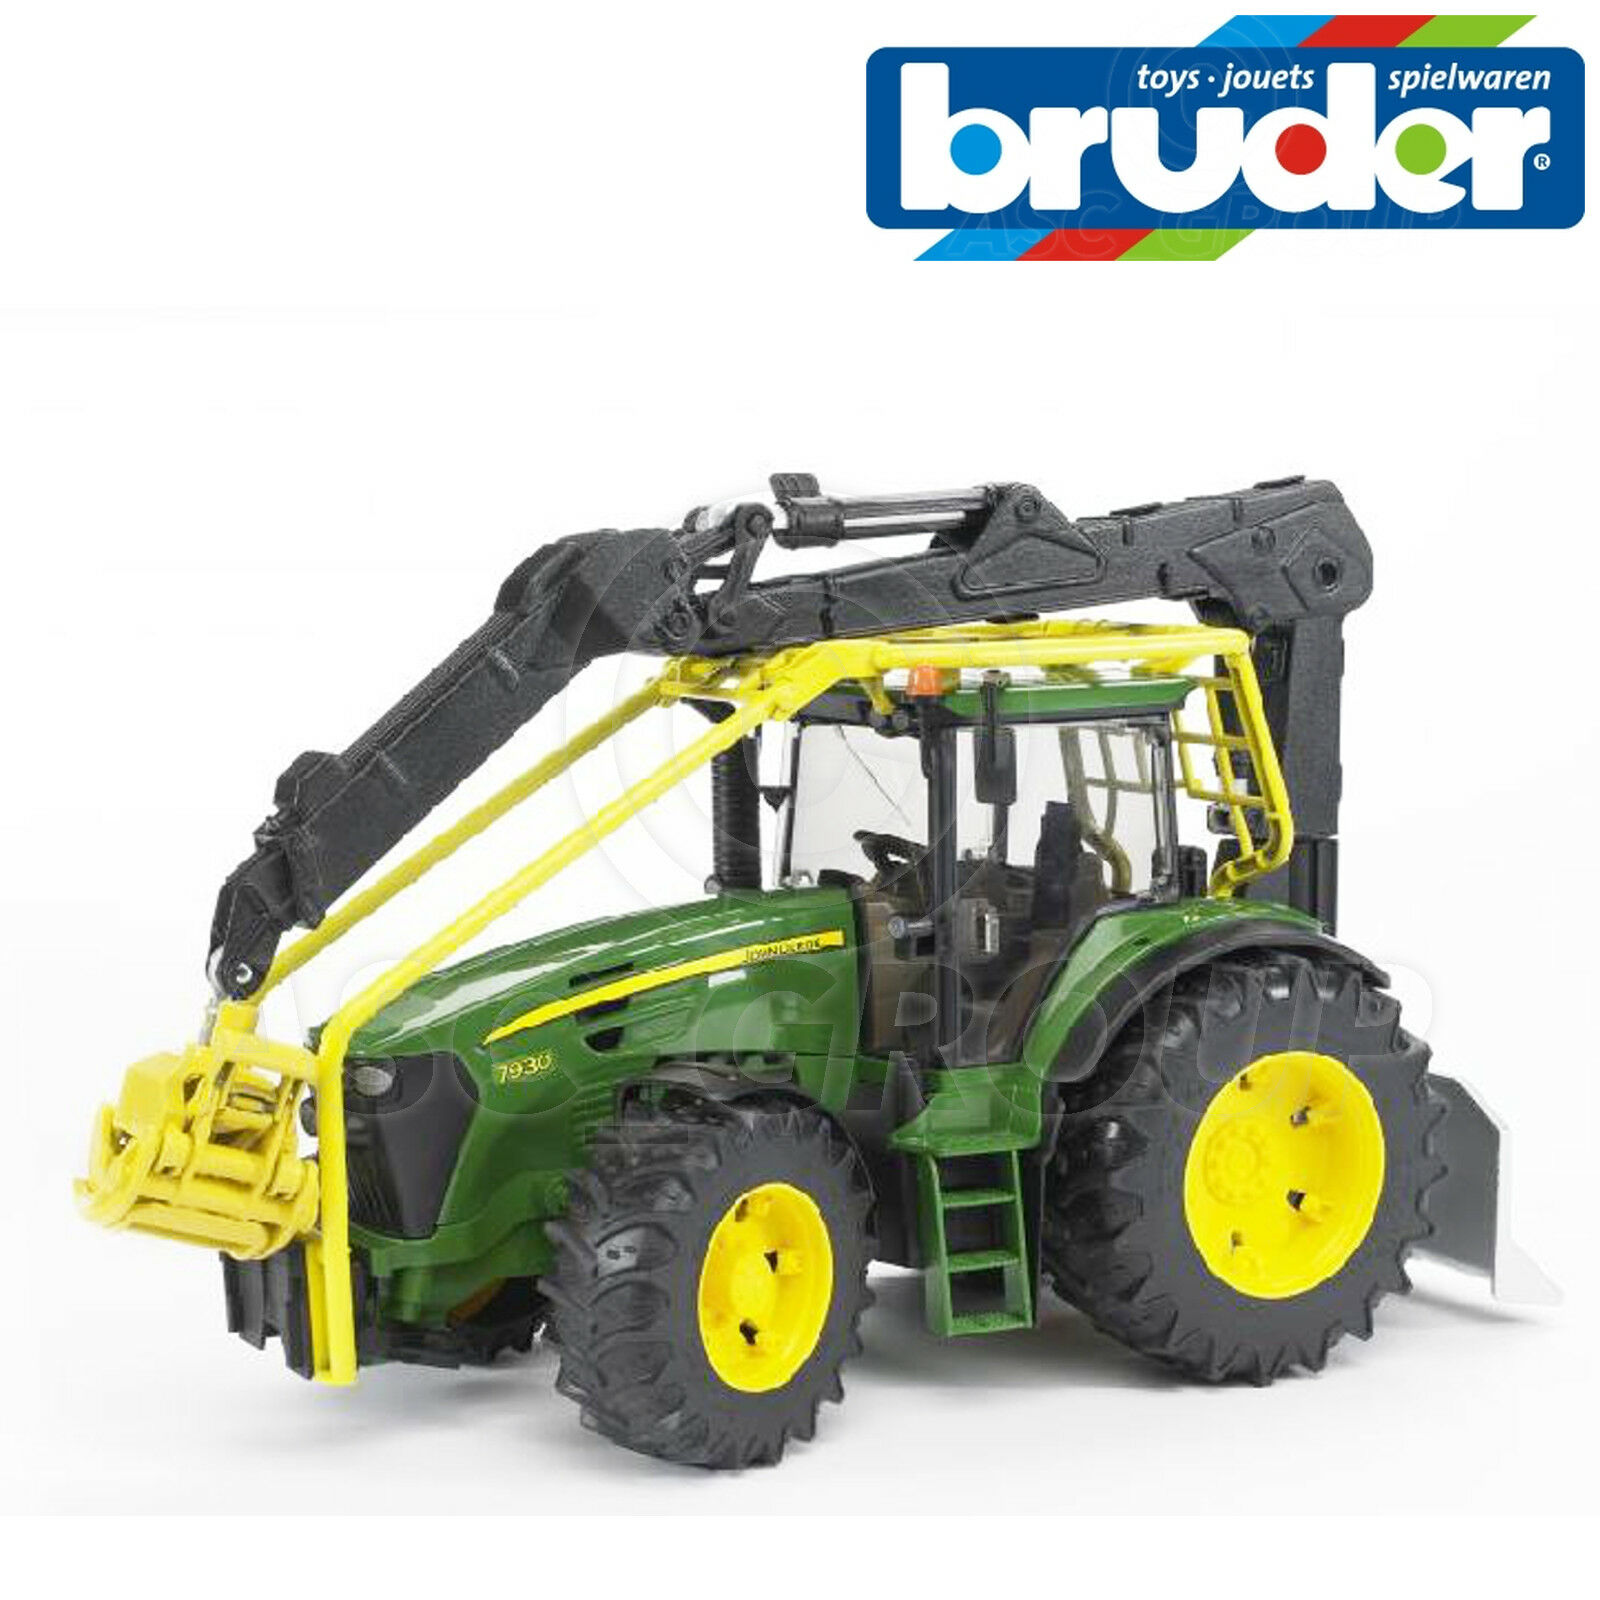 Bruder Toys 03053 ProSeries John Deere 7930 FORESTRY TRACTOR with Rear Grab 1 16